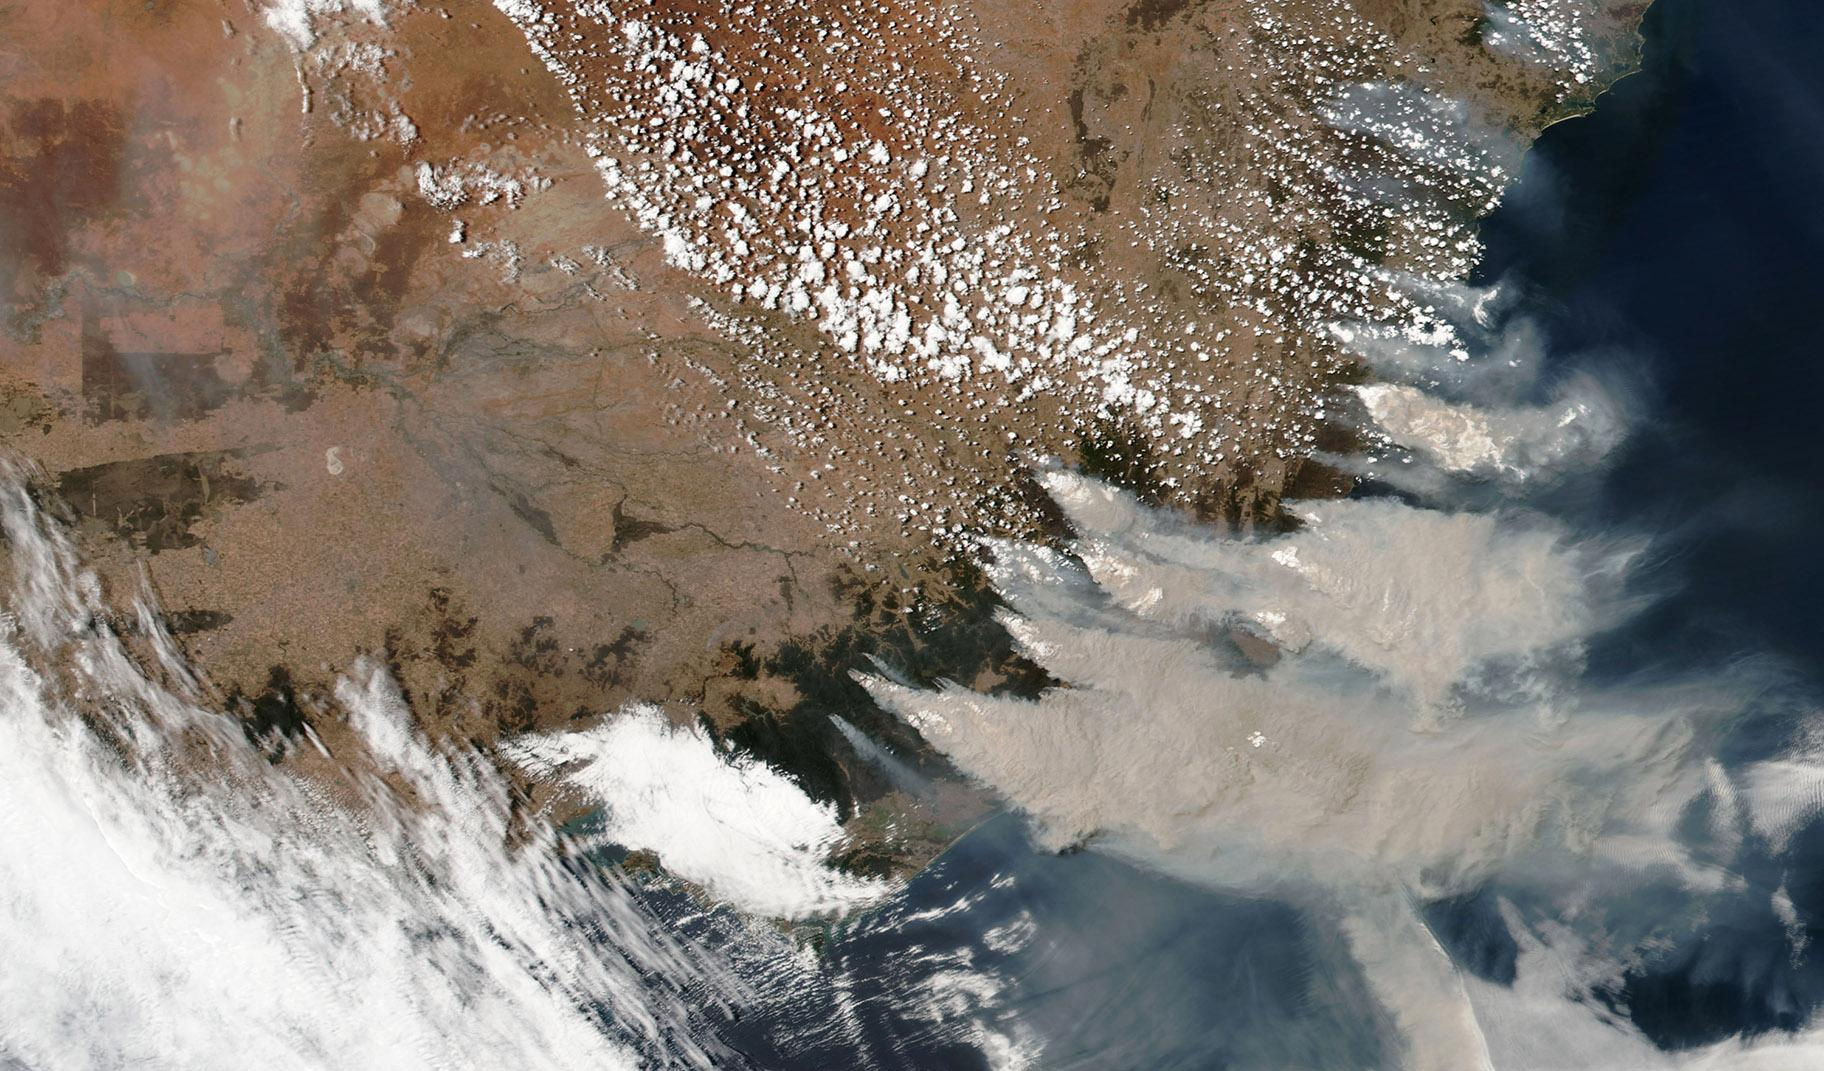 This satellite image provided by NASA on Saturday, Jan. 4, 2020 shows wildfires in Victoria and New South Wales, Australia. (NASA via AP)